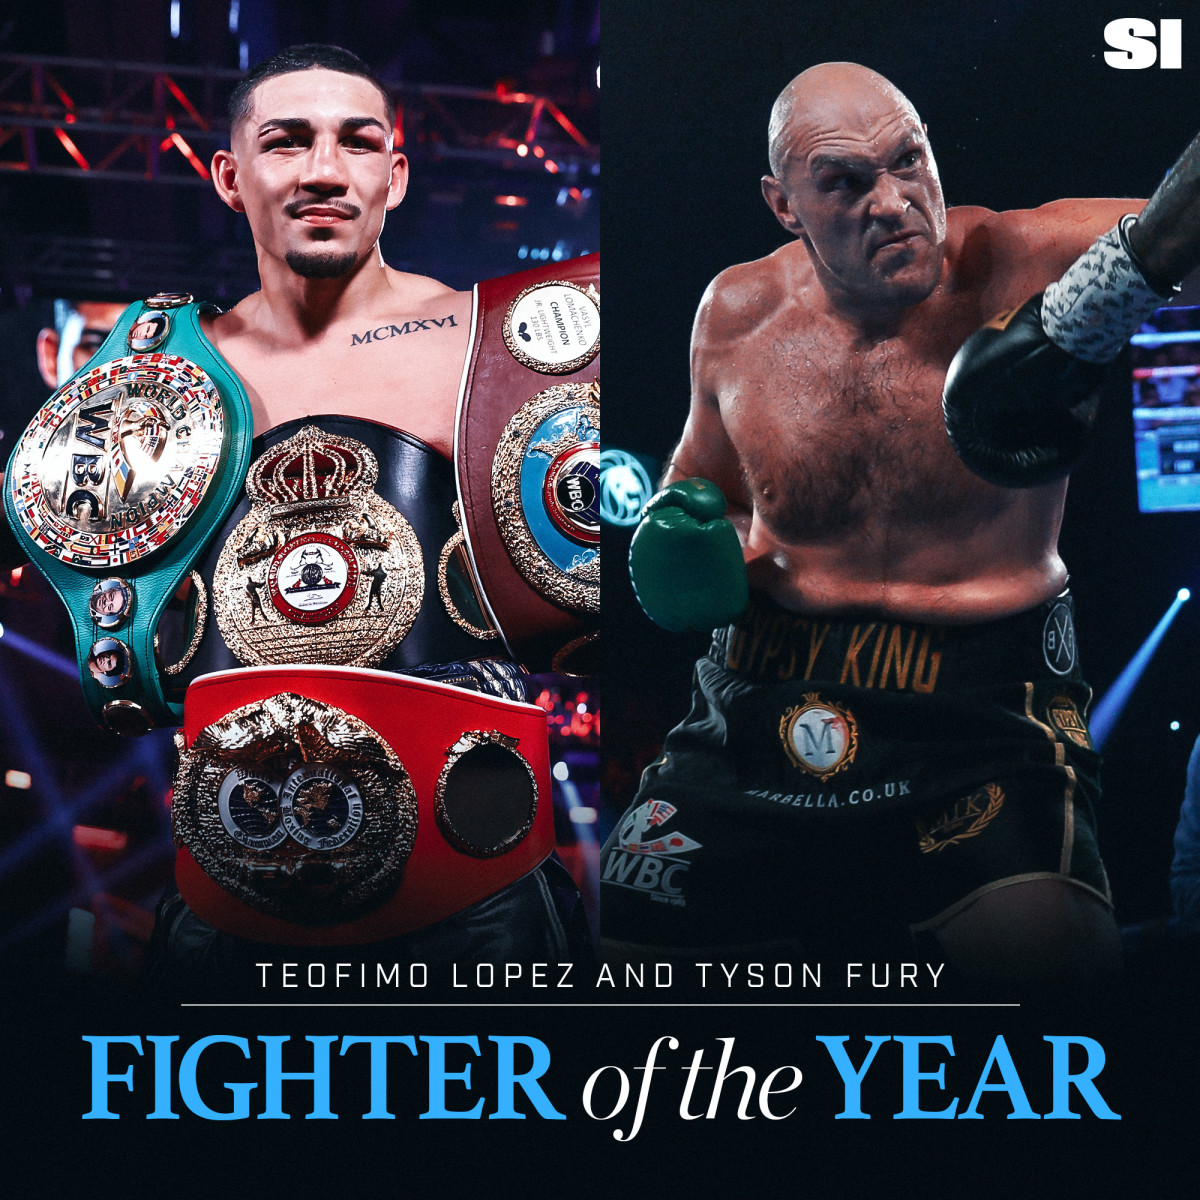 Teofimo Lopez and Tyson Fury share Sports Illustrated's Fighter of the Year honor.